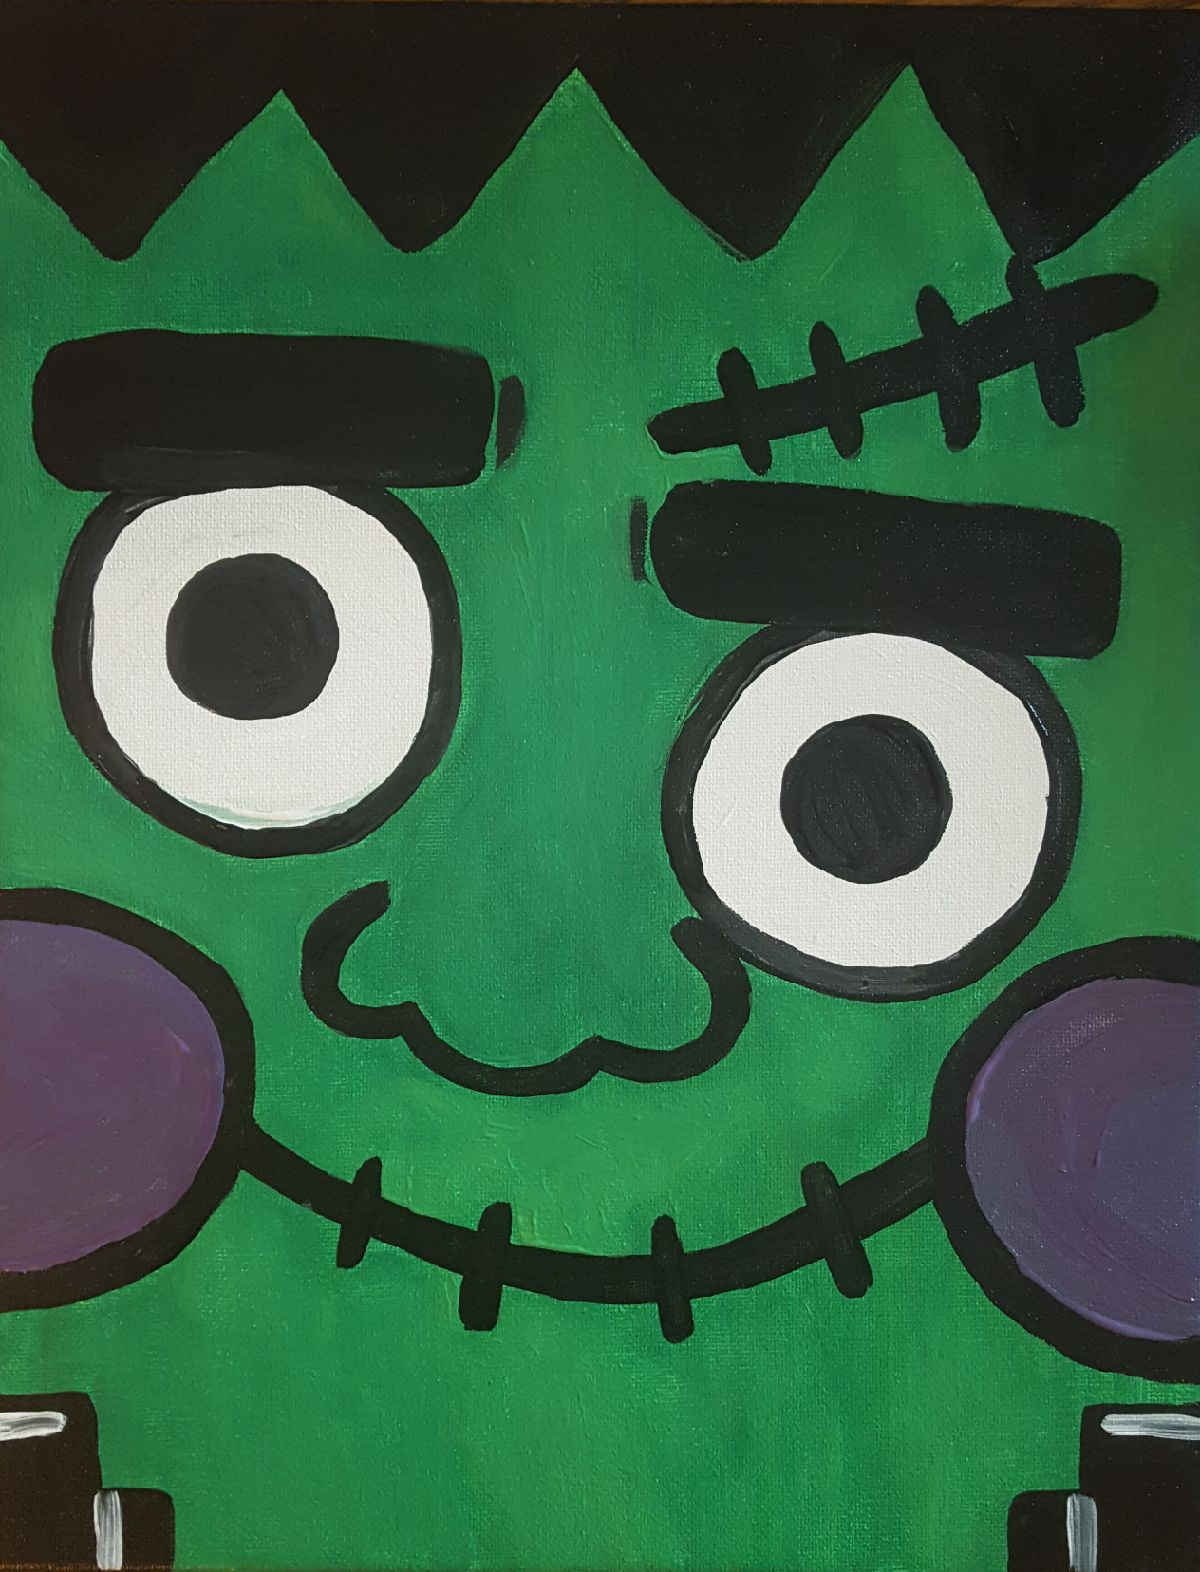 Frankenstein Painting - Open Play Starts at 10:00am with the Painting at 11:00am